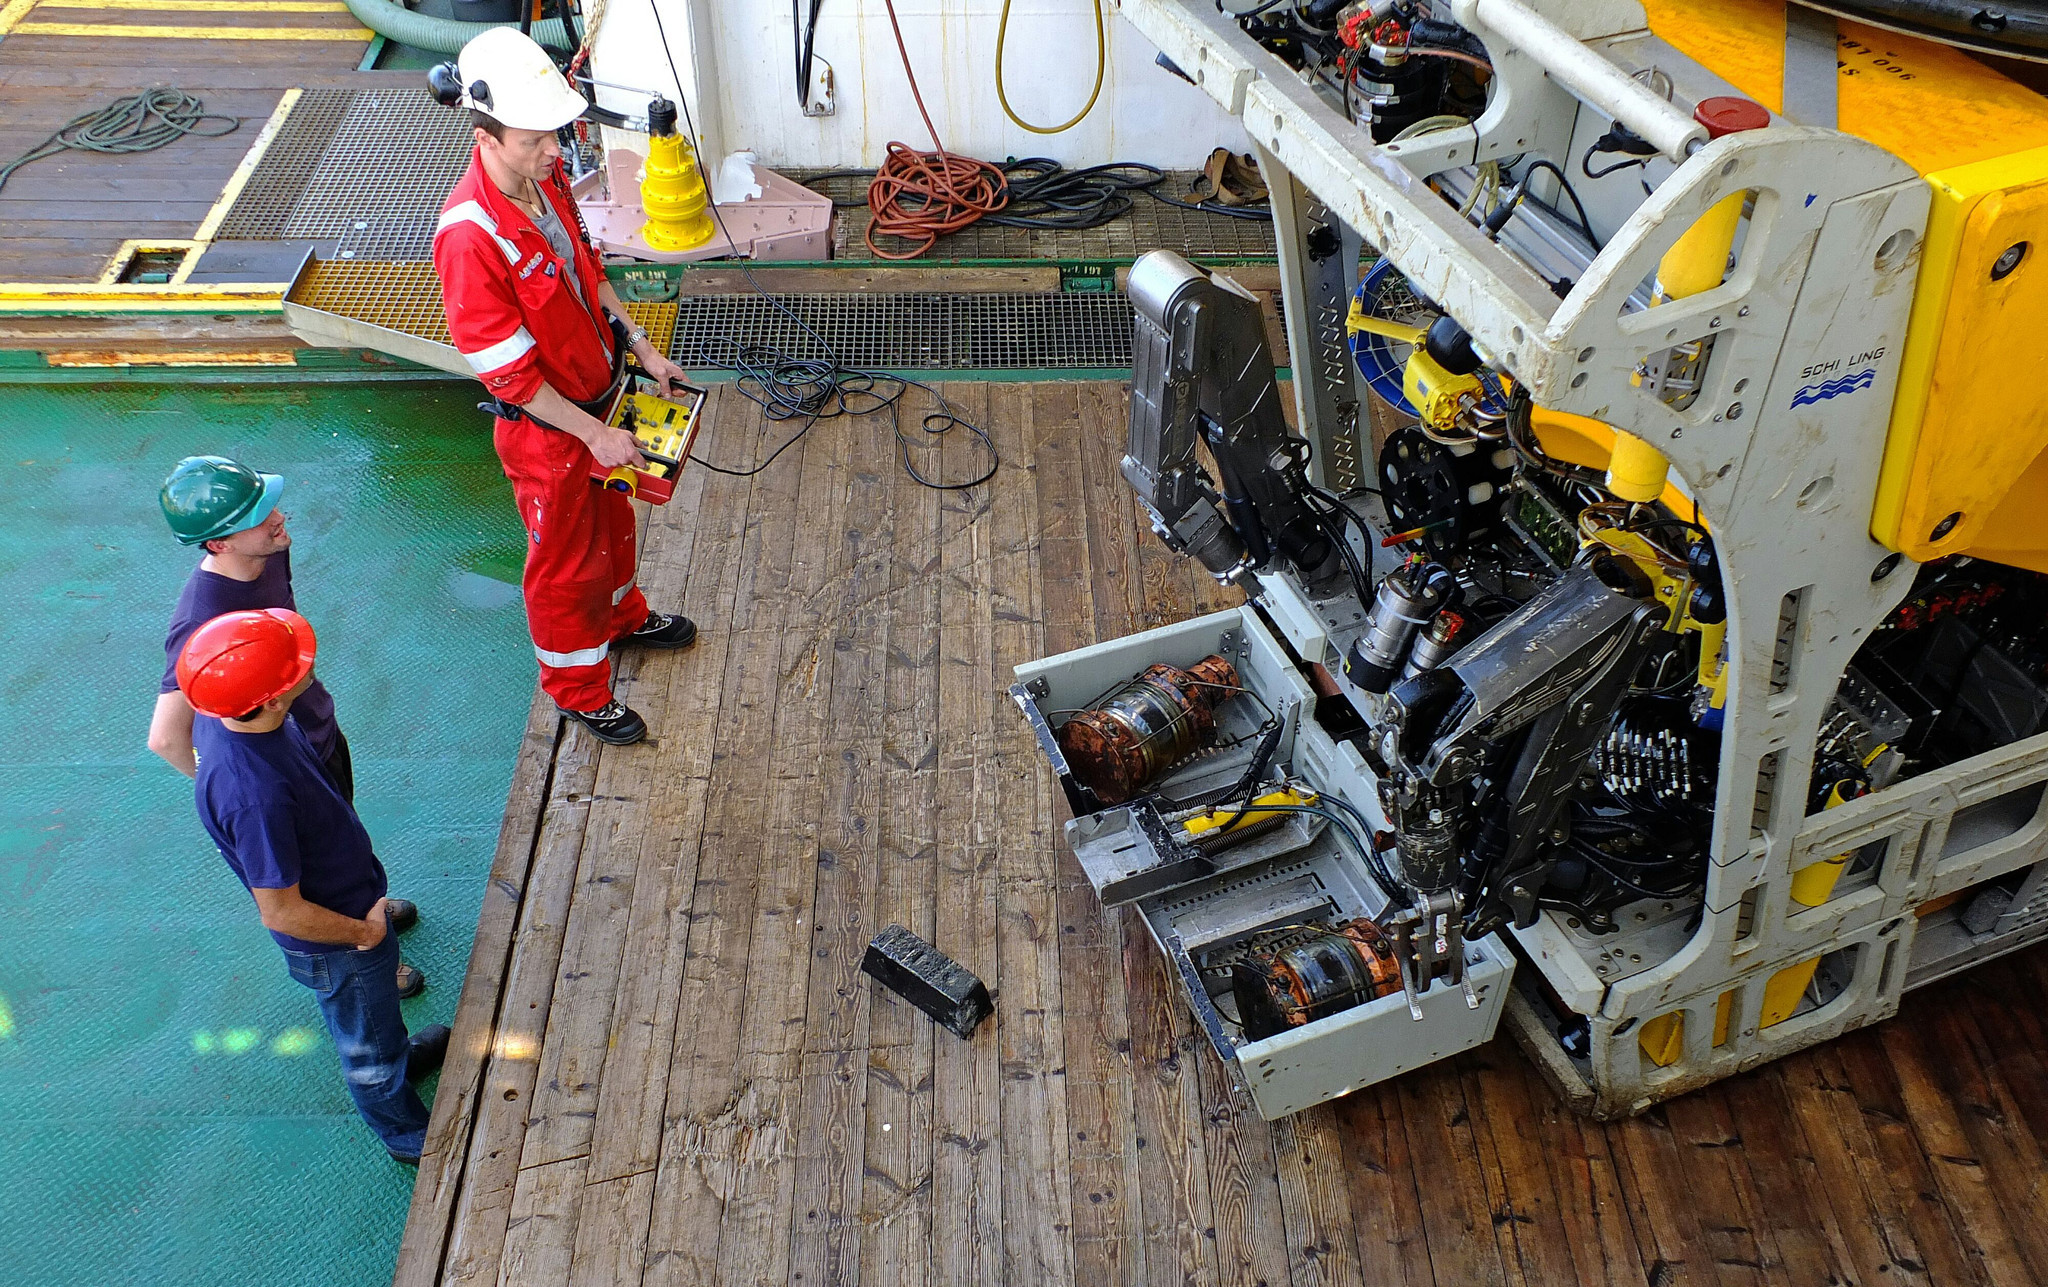 Odyssey recovers 61 tons of silver in north Atlantic - 2013 Gairsoppa silver recovery